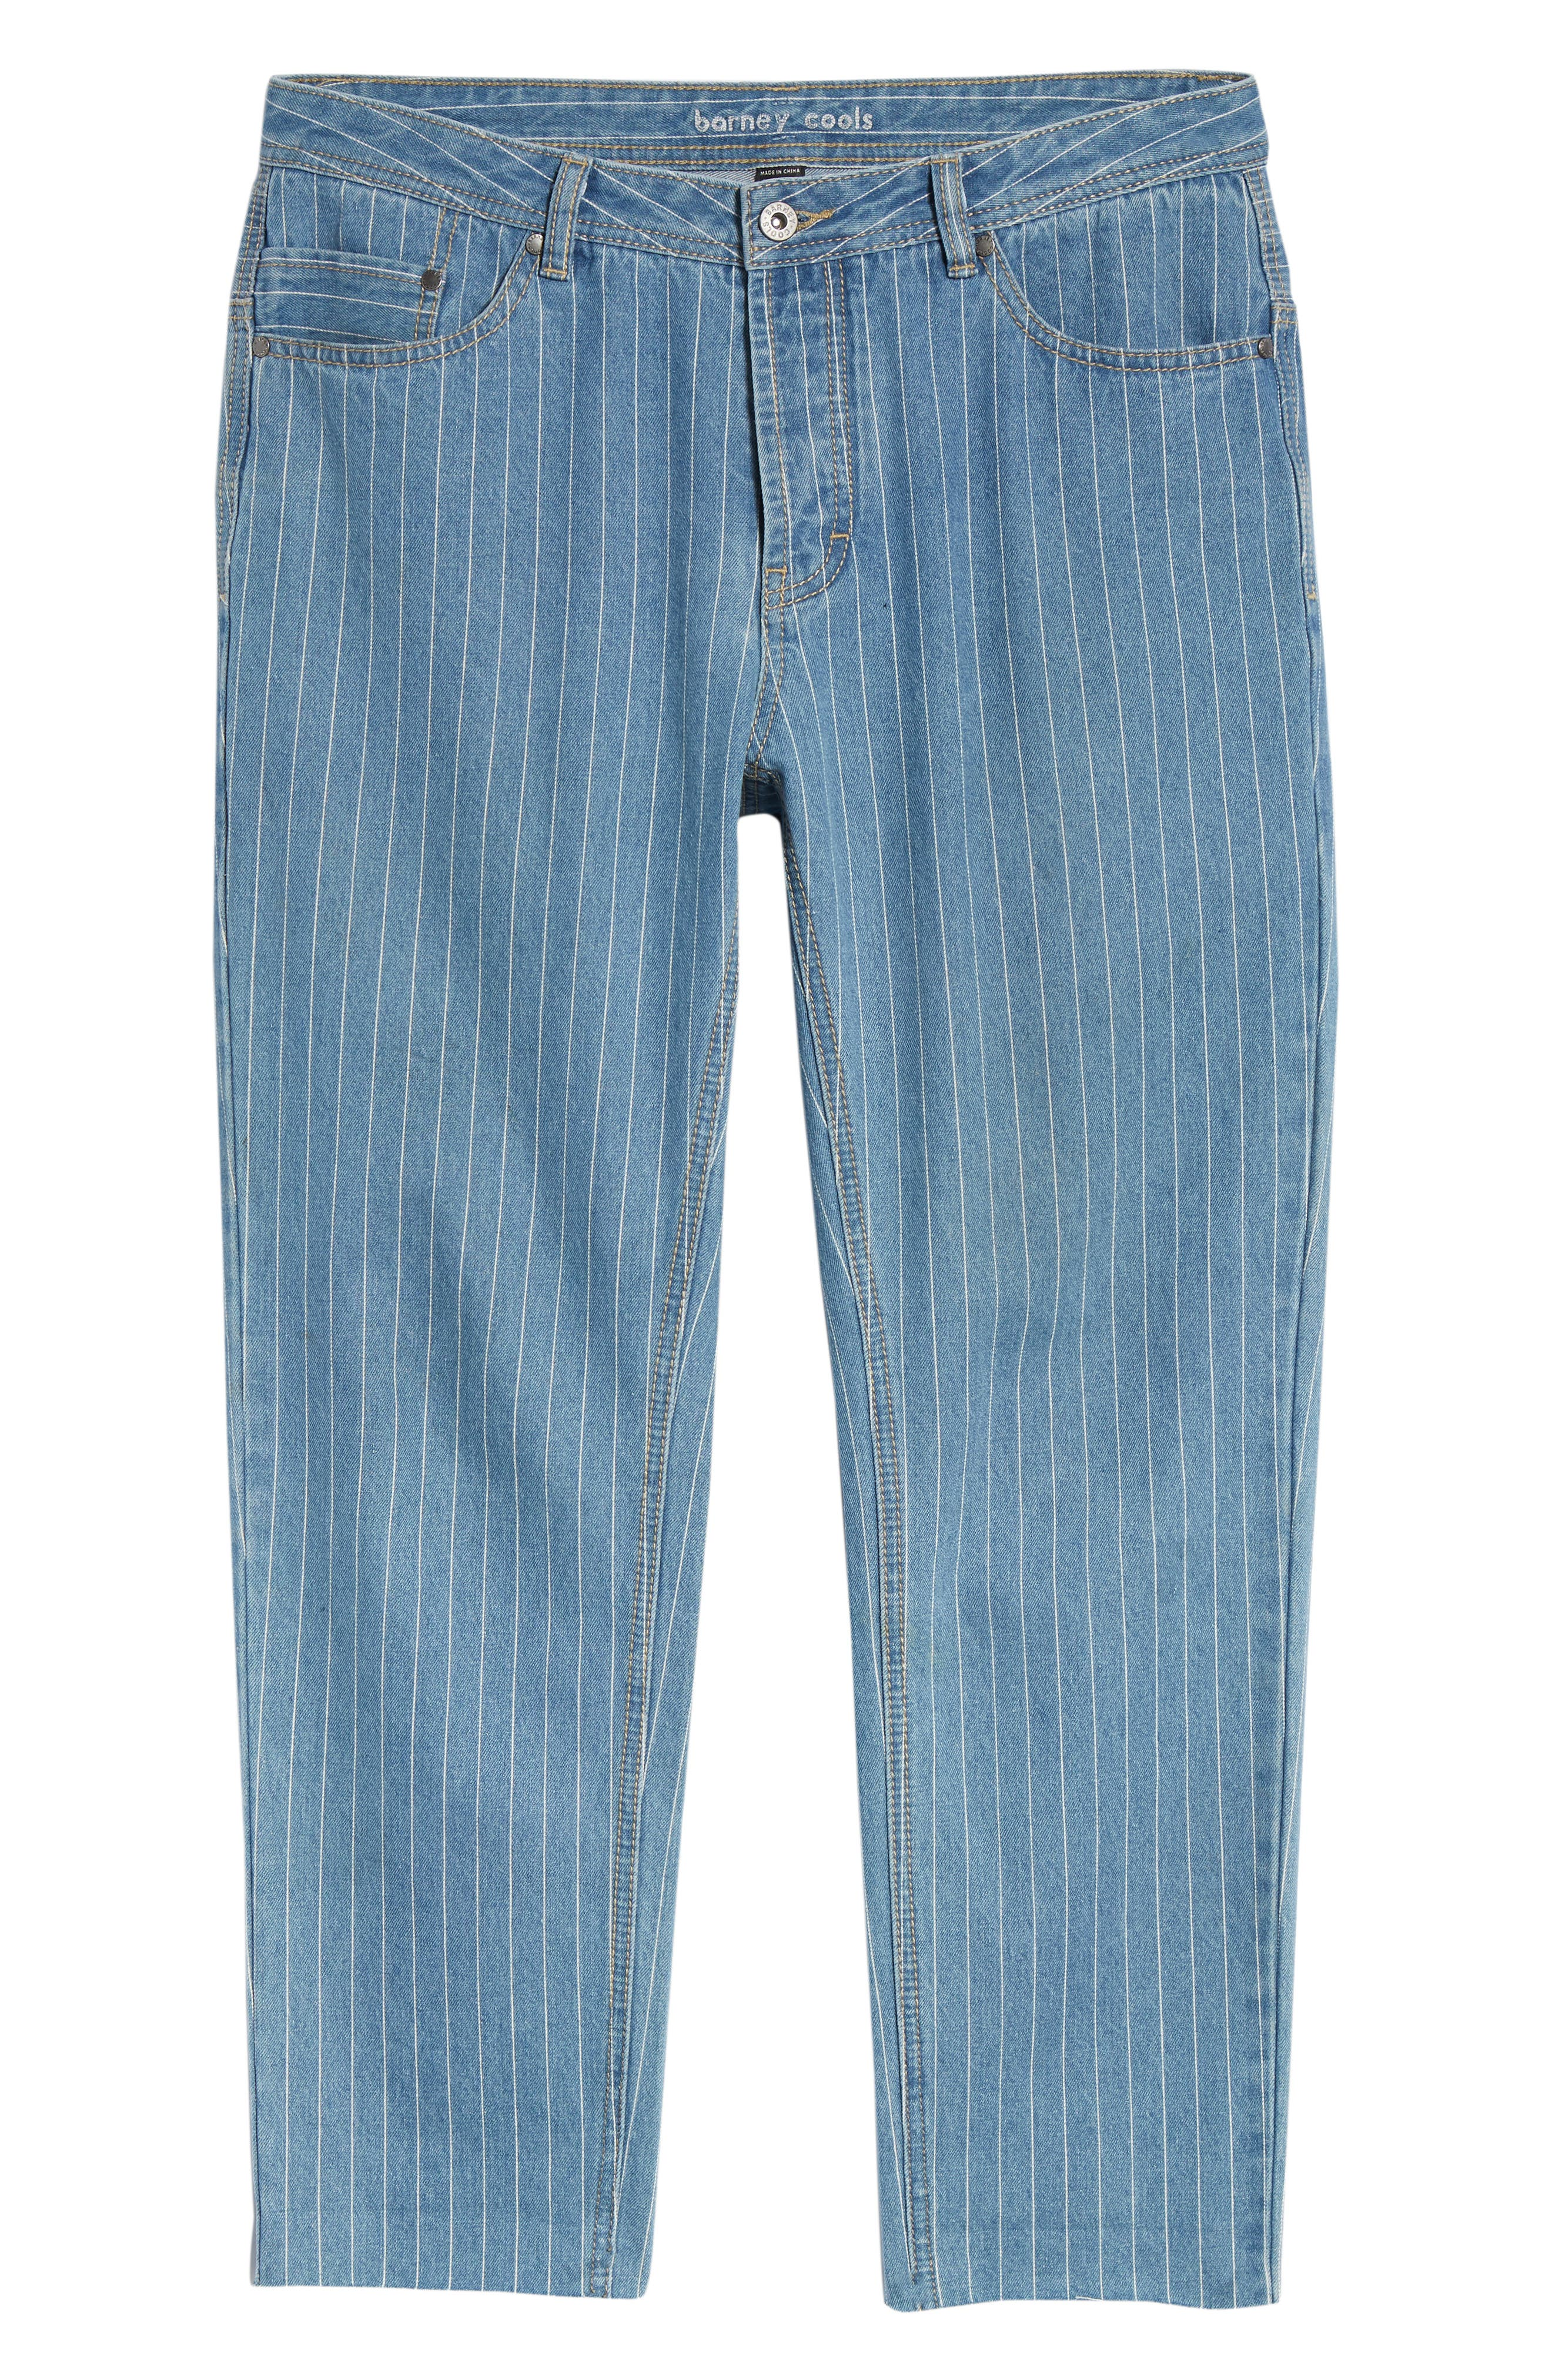 B. Relaxed Jeans,                             Alternate thumbnail 6, color,                             430